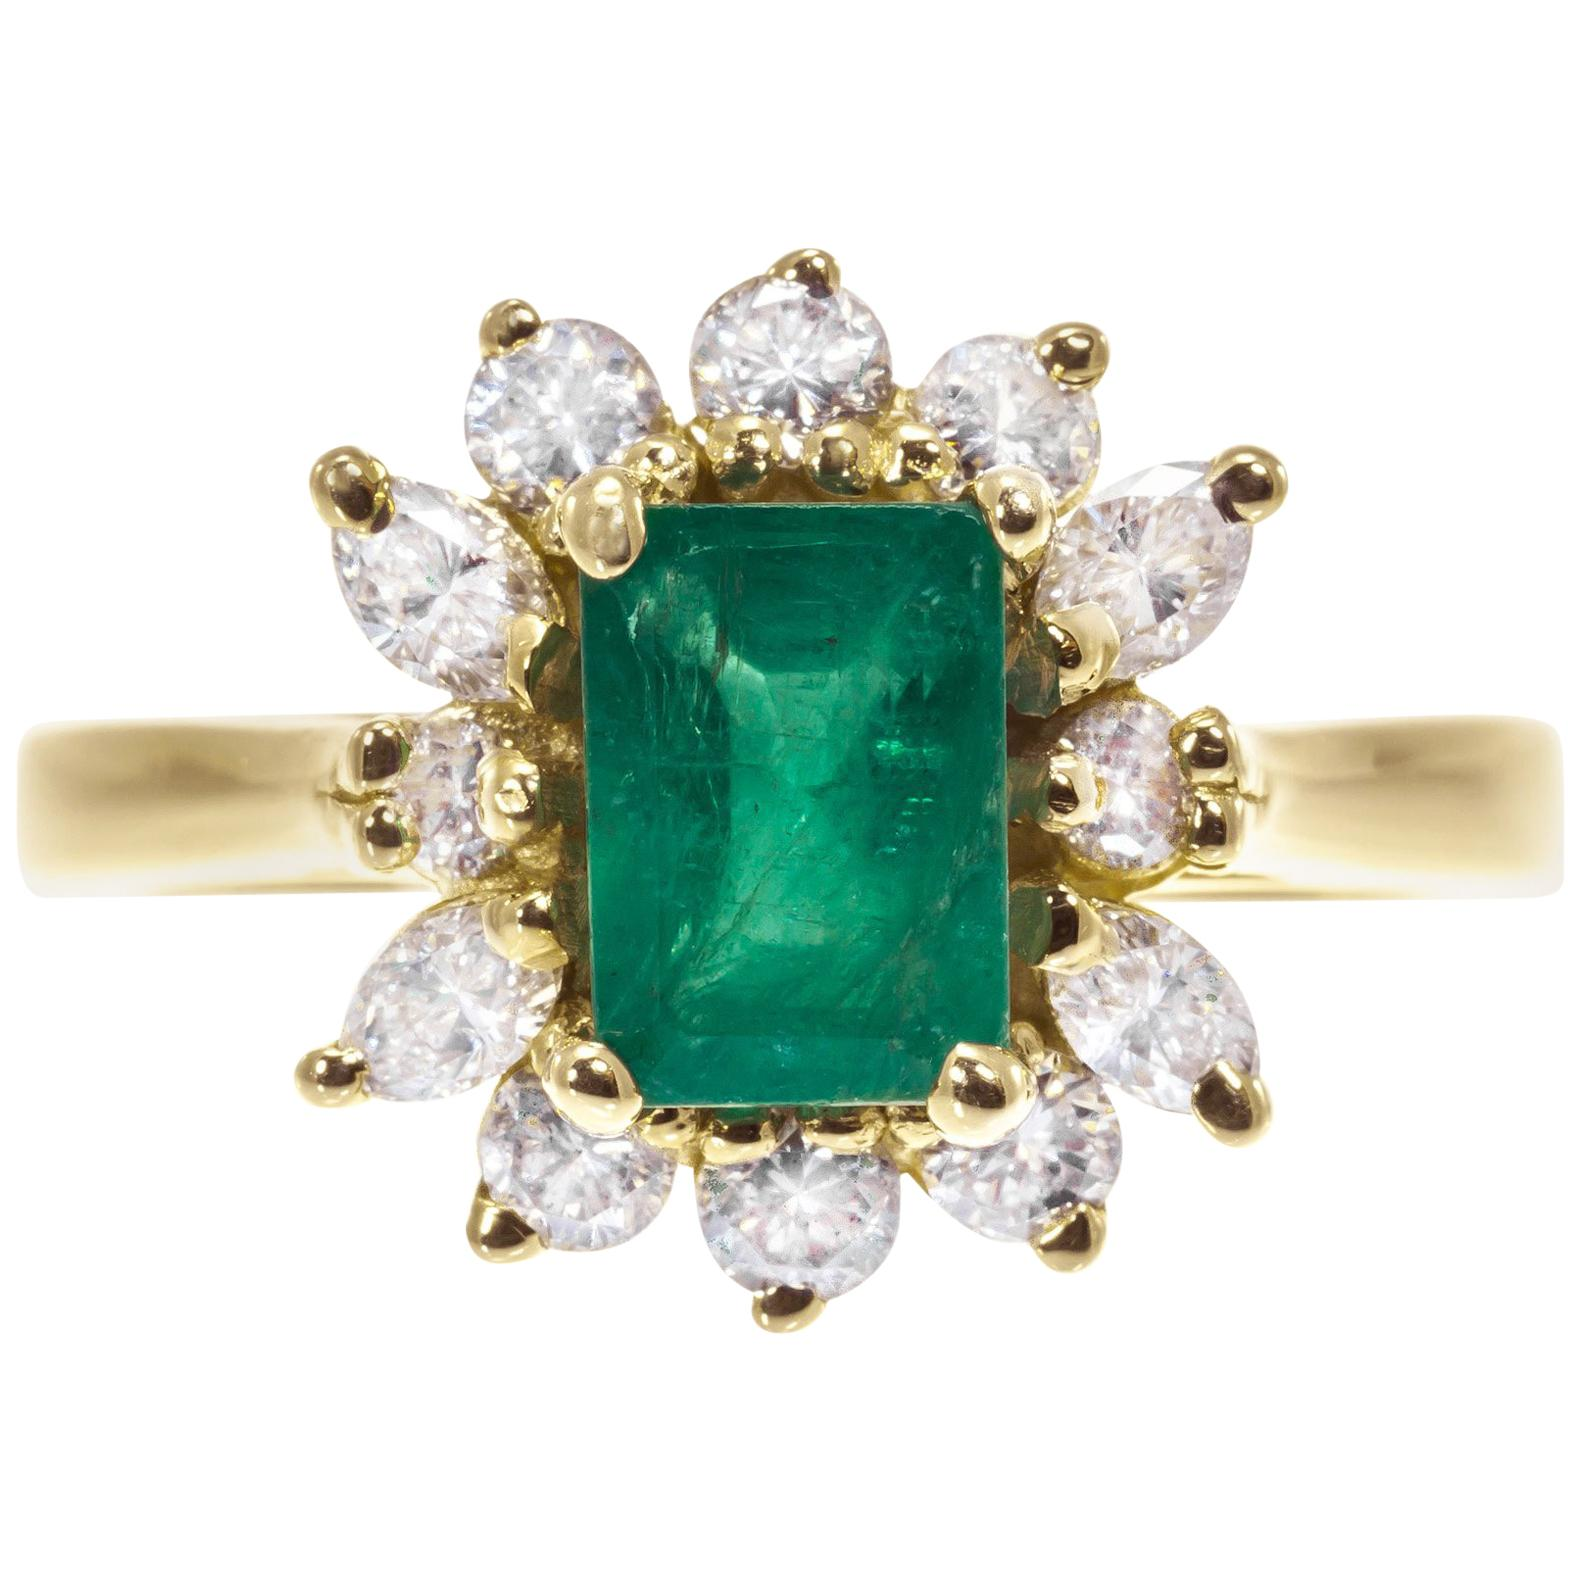 GIA Certified 1.04 Carat Emerald Diamond Halo Yellow Gold Engagement Ring